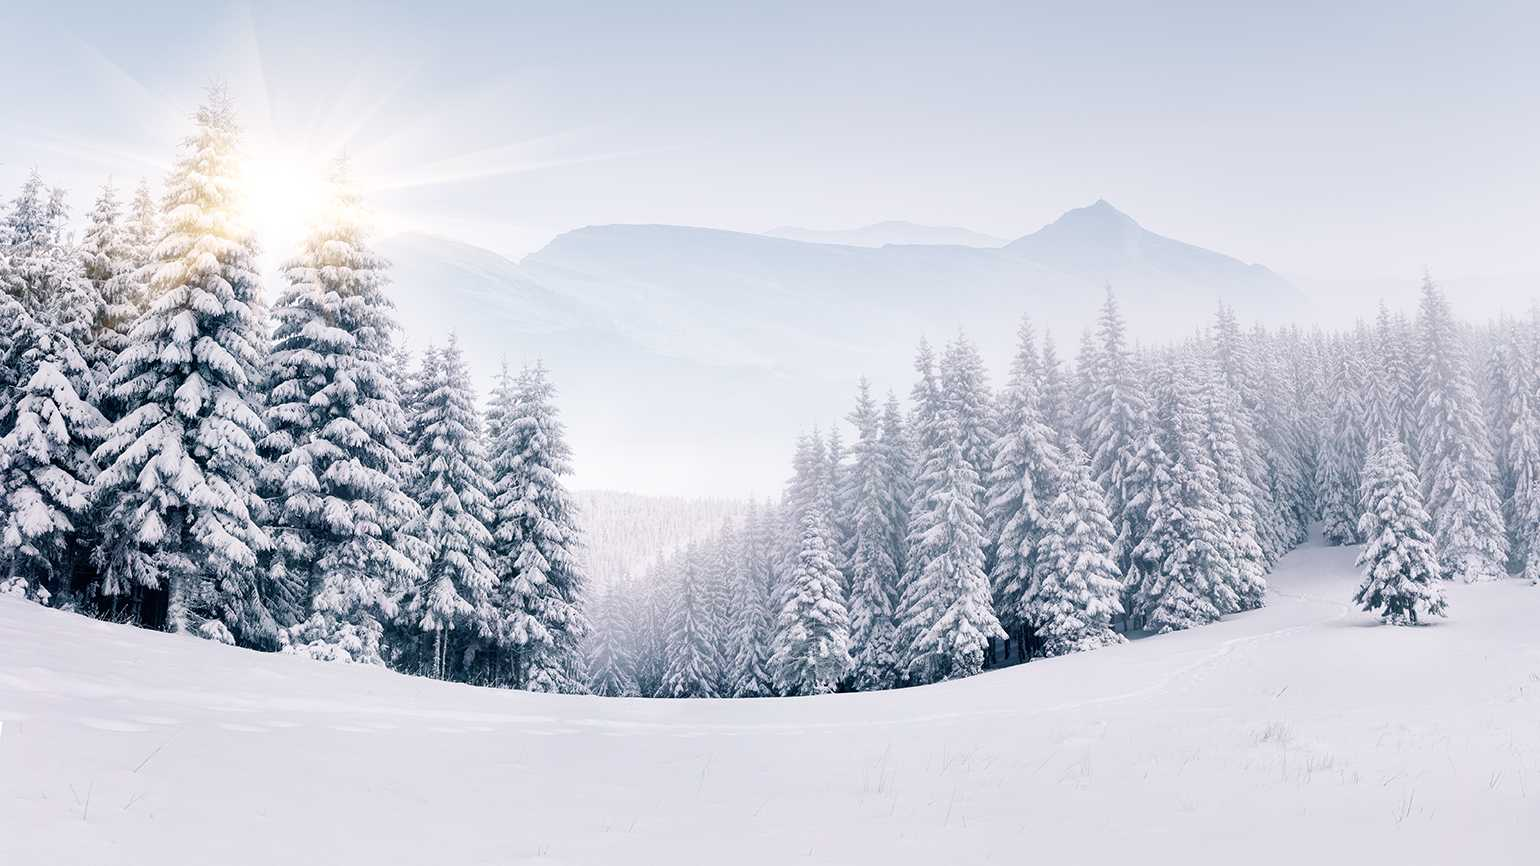 A snow-covered mountain scene